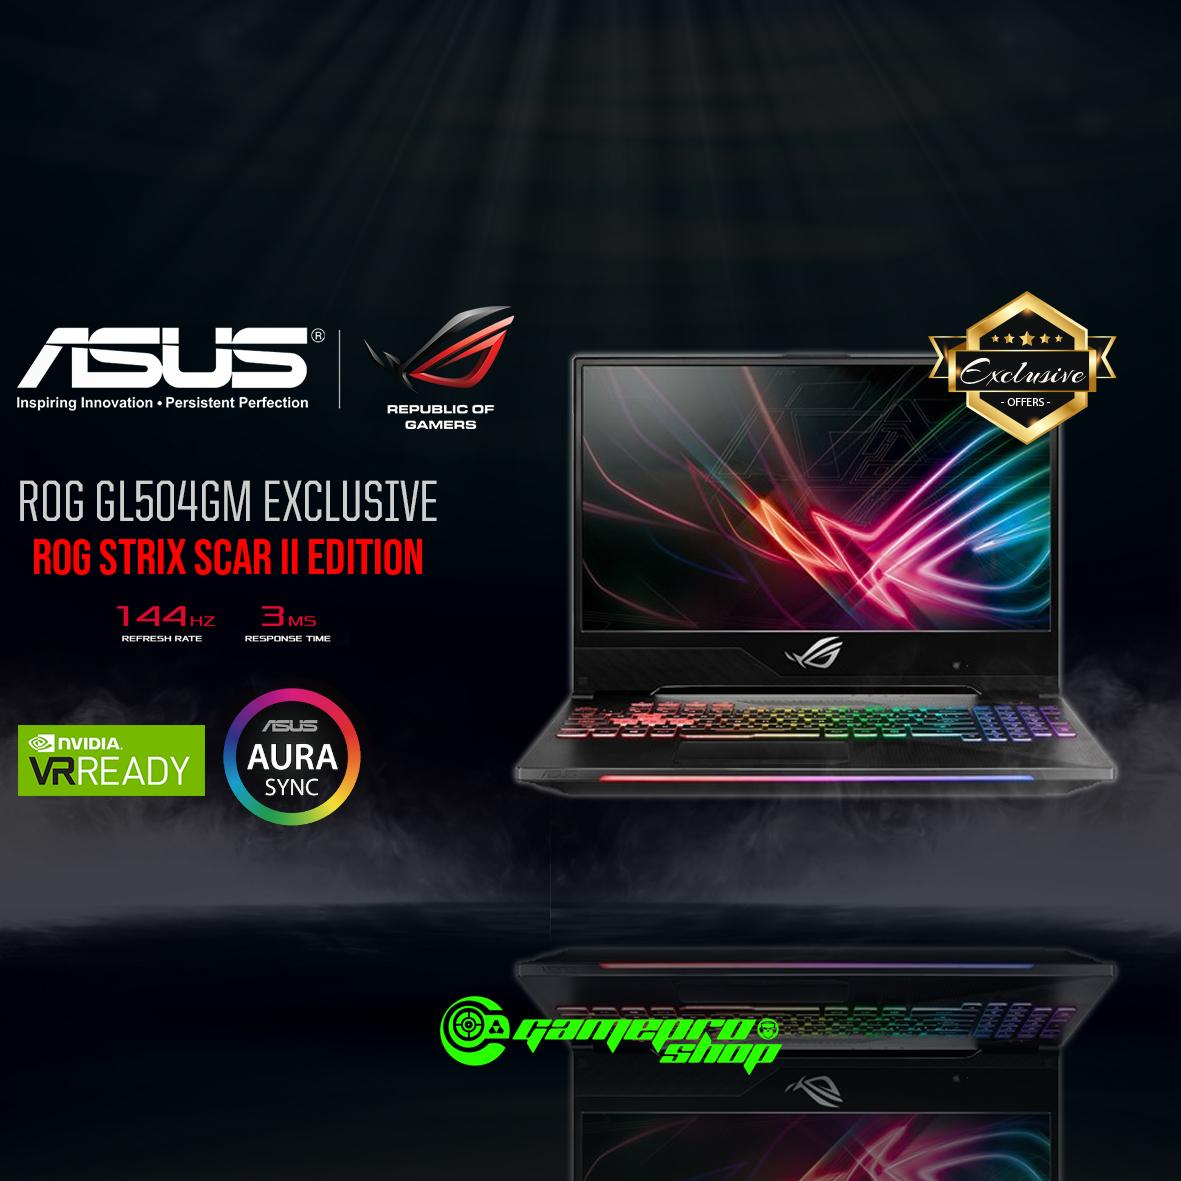 8th Gen ASUS ROG Strix SCAR II GL504GM - ES142T EXCLUSIVE ( I7-8750H / 8GB / 128GB SSD + 1TB HDD / GTX 1060 ) 15.6 WITH 144Hz GAMING LAPTOP *11.11 PROMO*